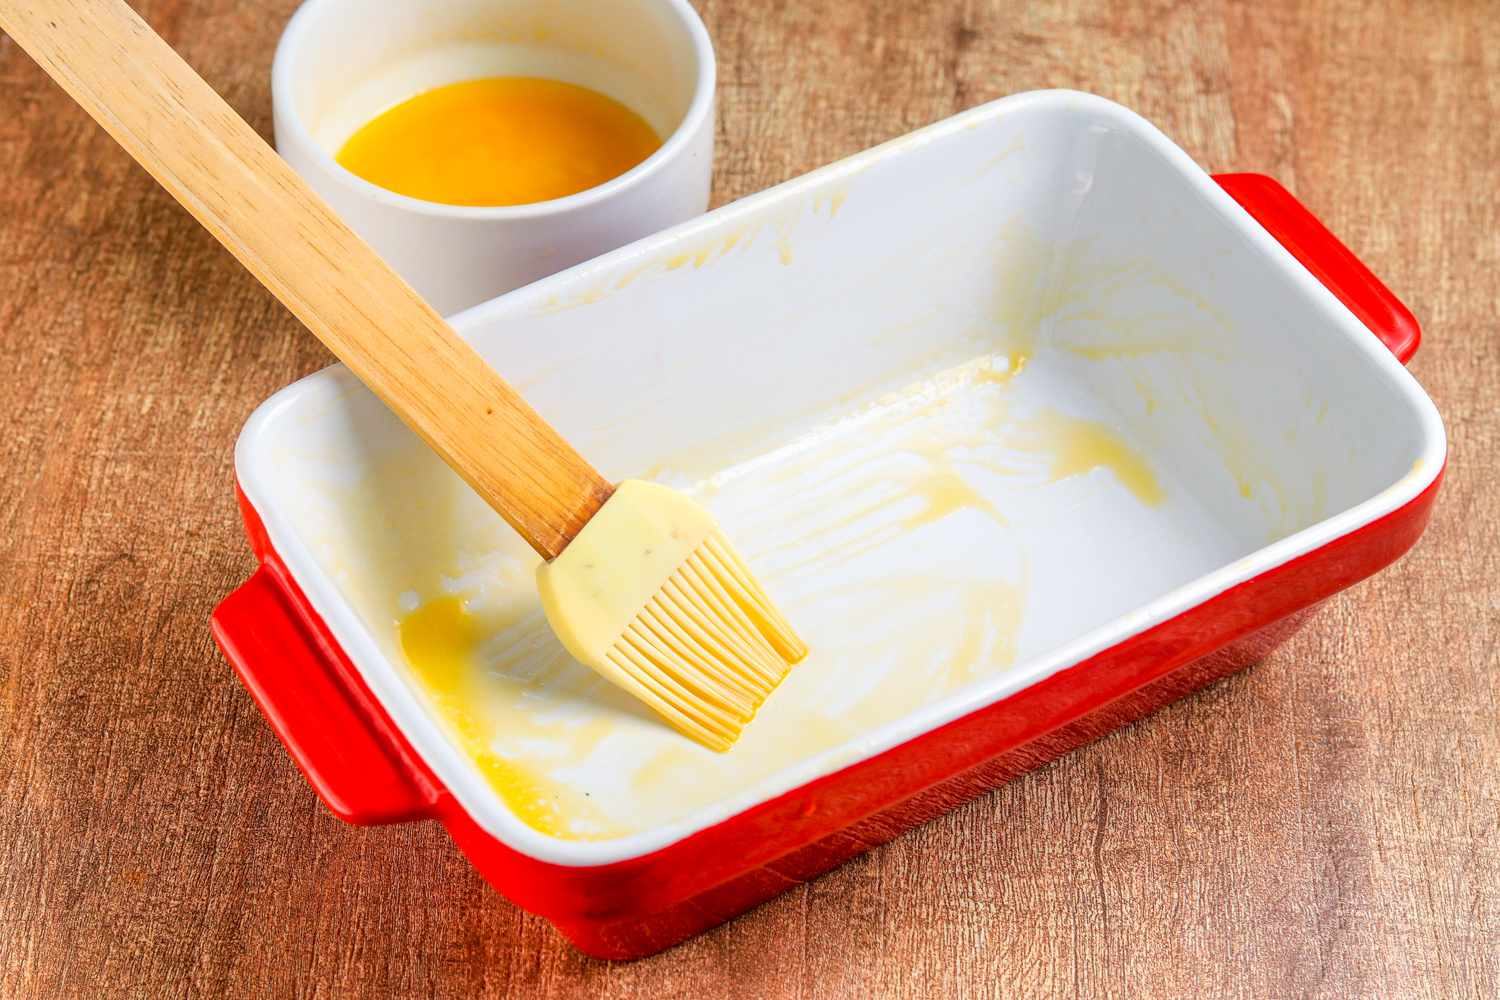 Buttered shallow baking dish